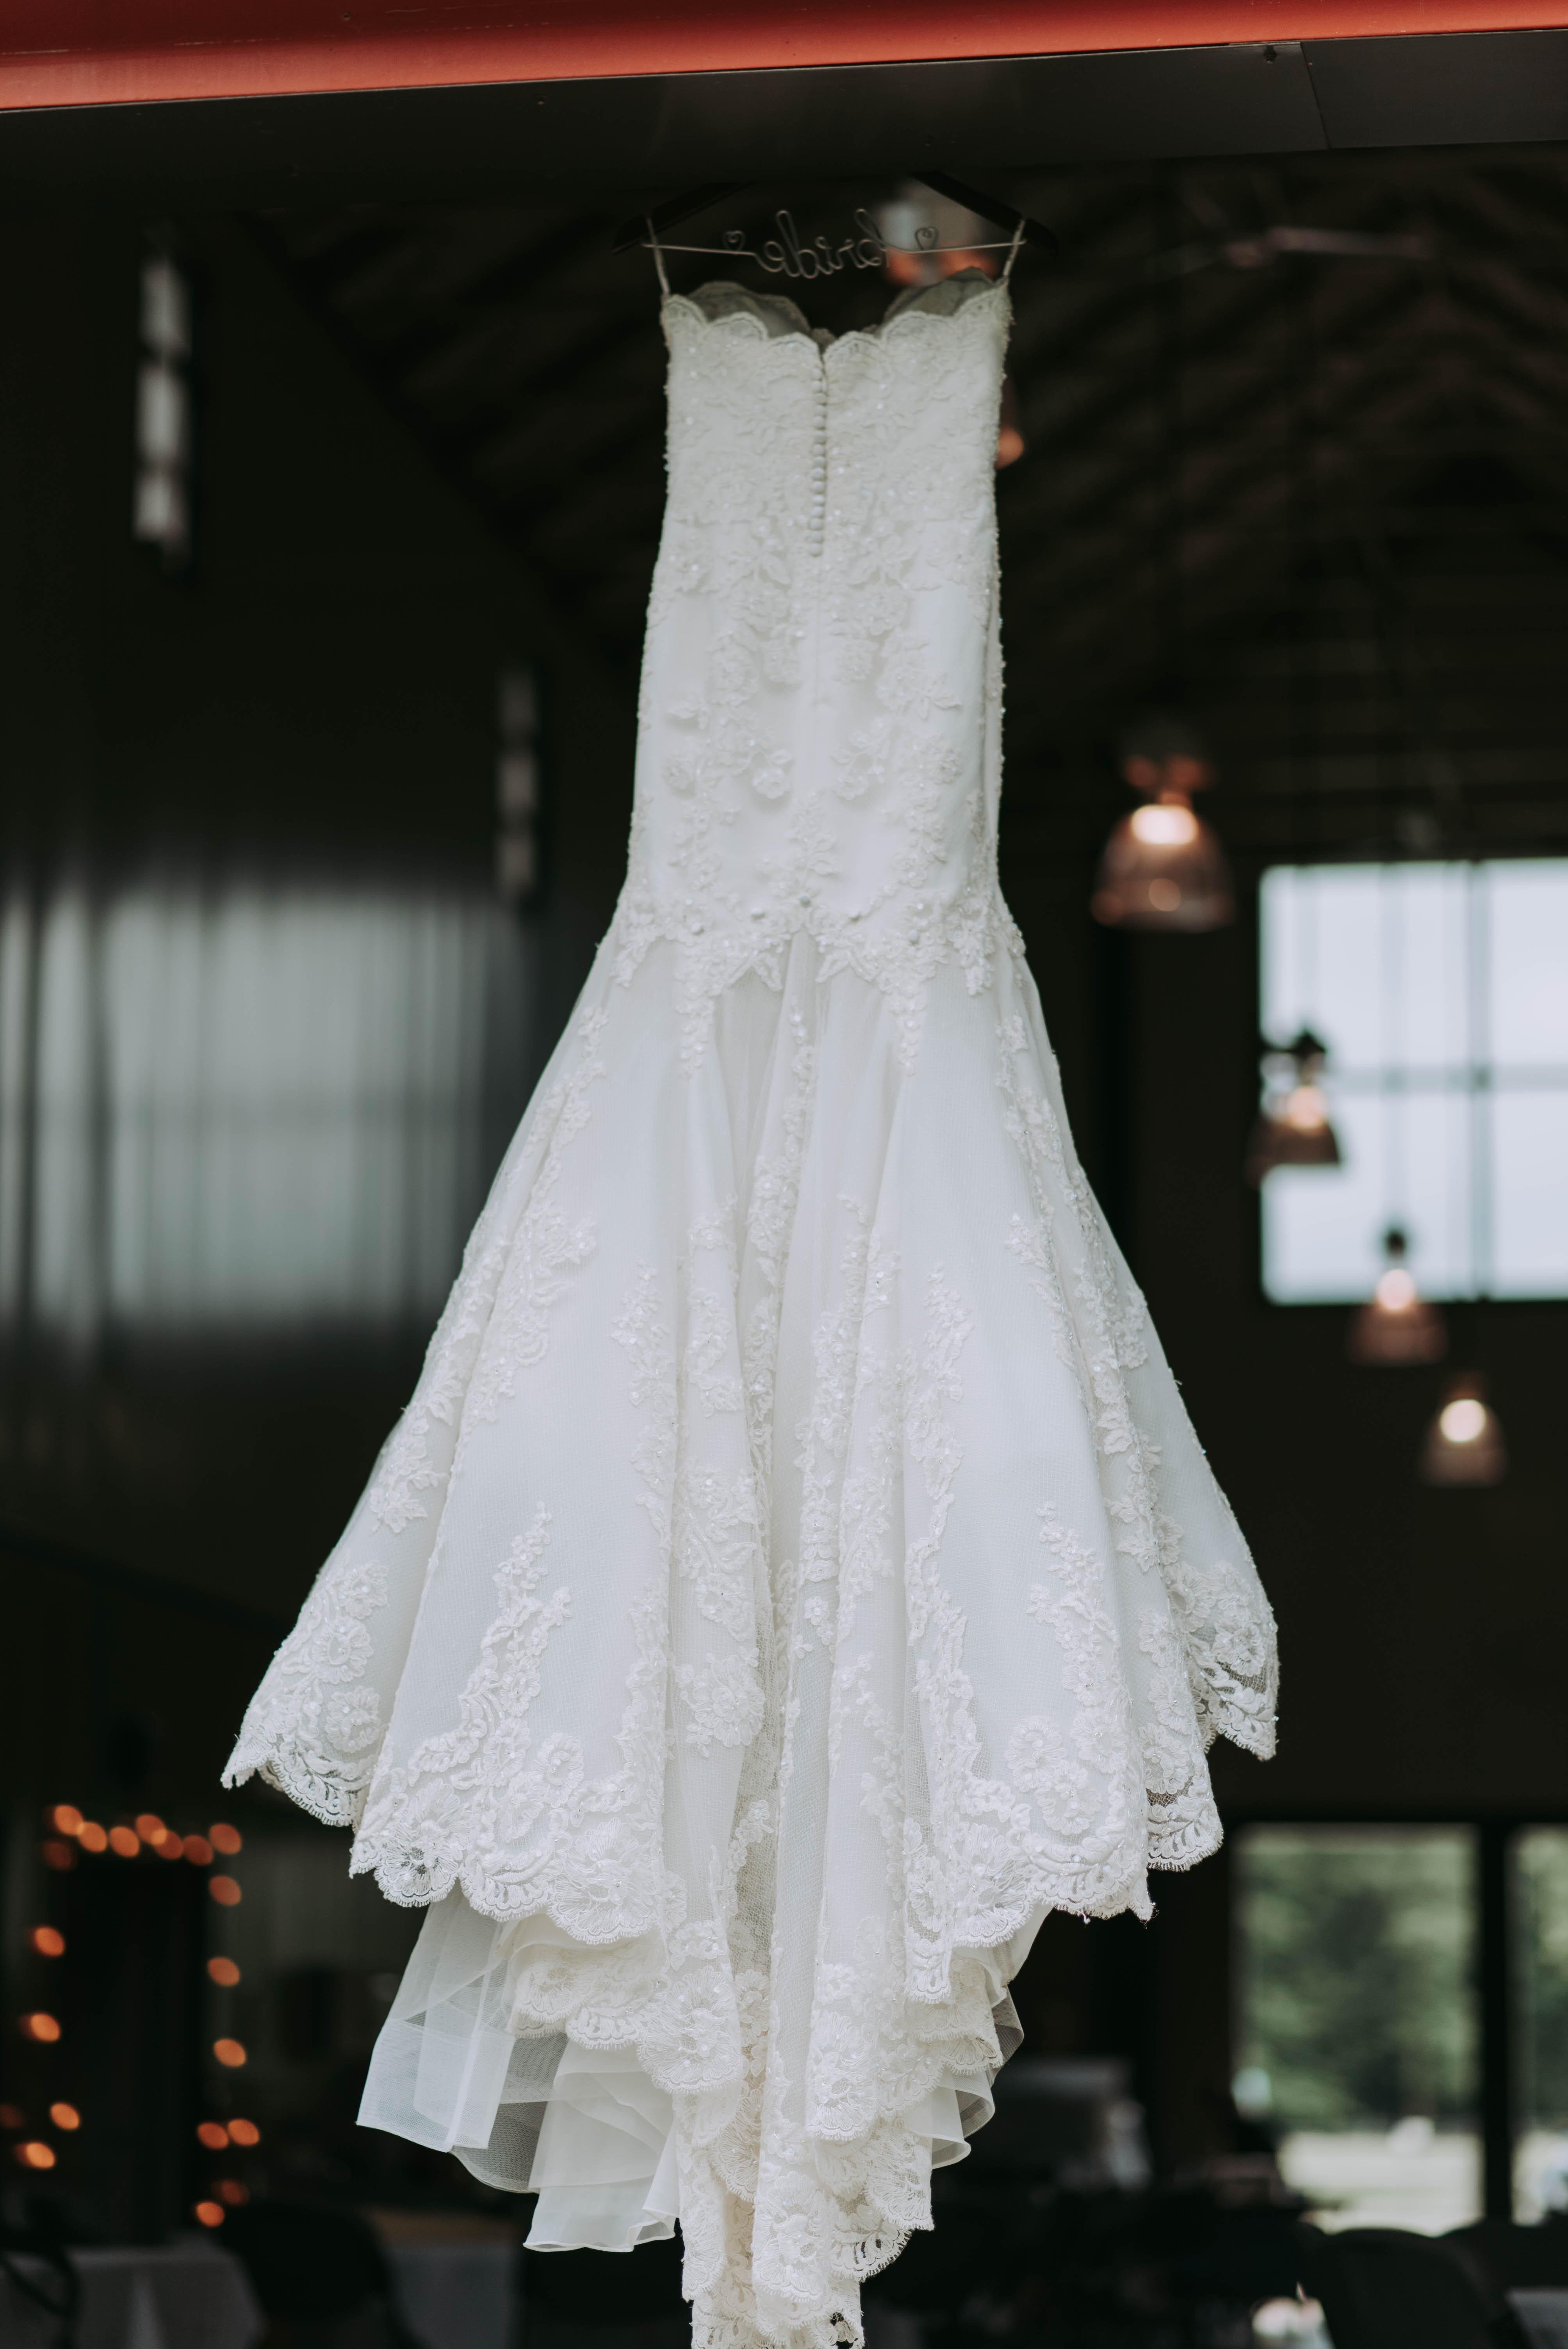 women's white strapless wedding dress hanged on clothes hanger